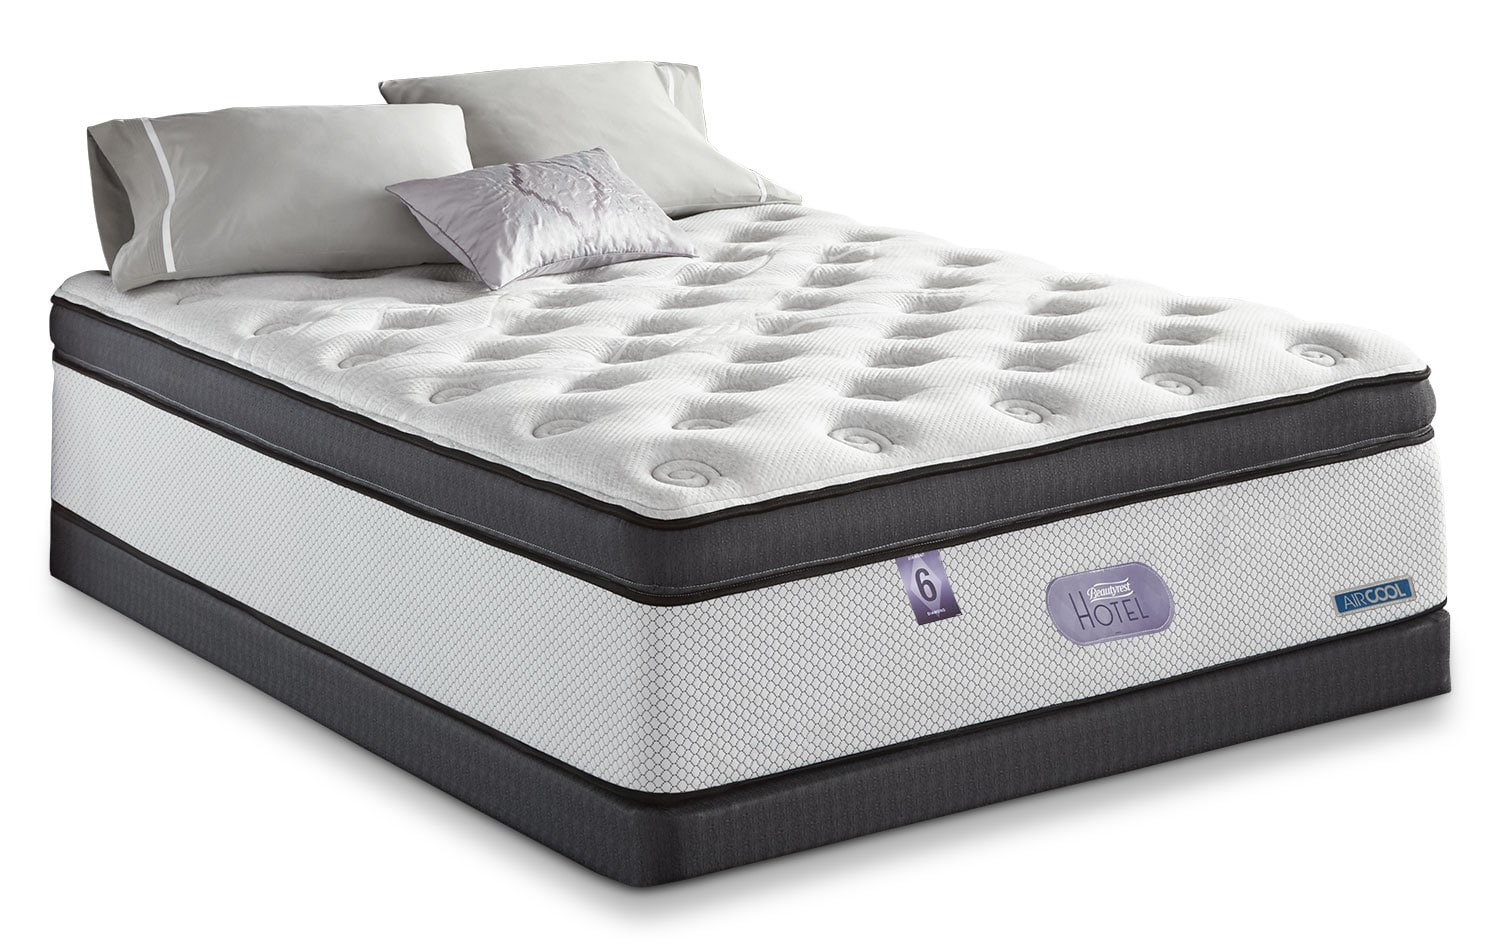 Simmons Beautyrest® Hotel Diamond 6.0 Ultra Comfort Top Plush King Mattress Set